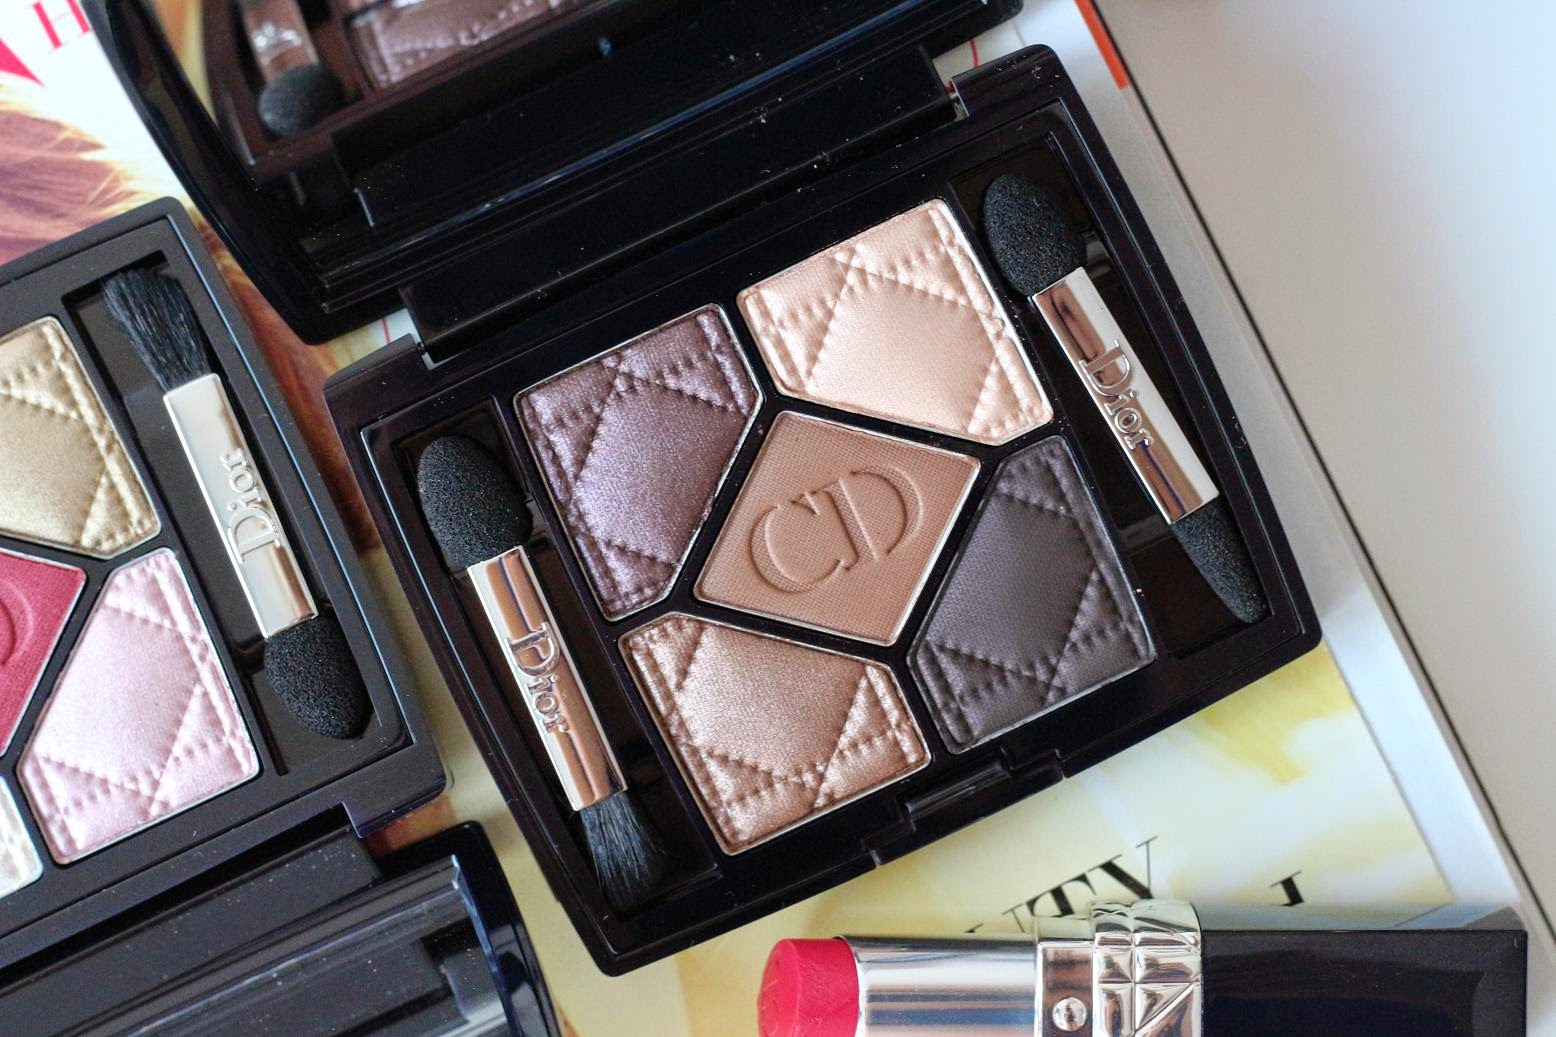 Dior 5 Couleurs 796 Cuir Cannage